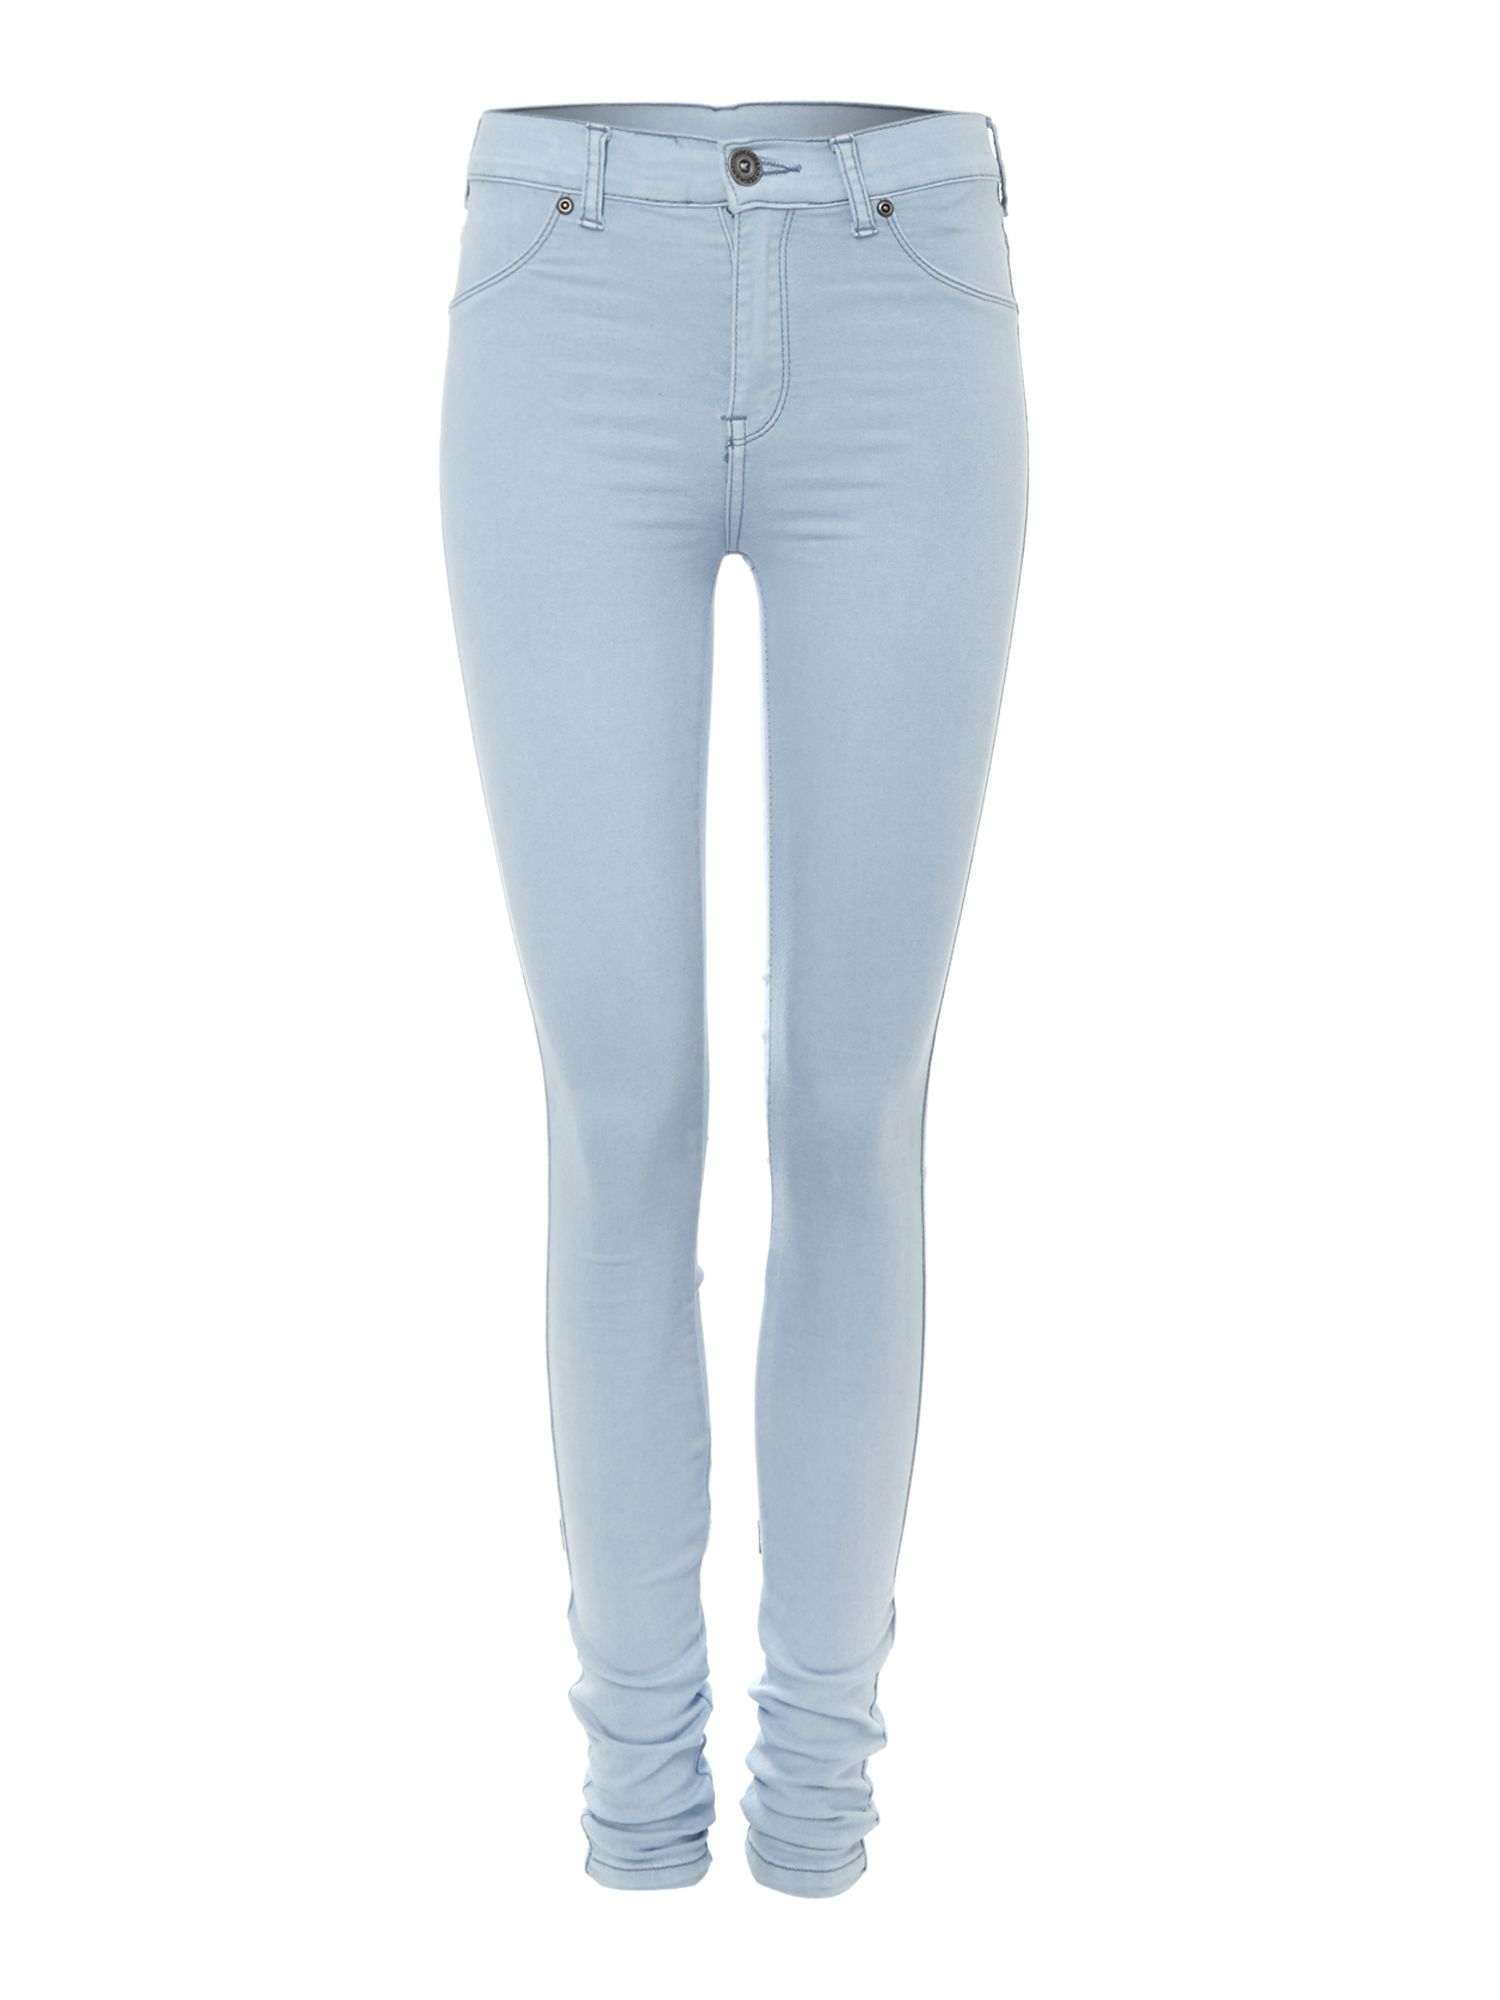 Discover women's jeans at ASOS. Shop our wide range of jeans from boyfriend, mom to skinny & ripped jeans. Choose from brands like Levi's, Diesel & G-Star. ASOS DESIGN Ridley high waist skinny jeans in light stonewash blue. $ ASOS DESIGN Rivington high waisted jeggings in black coated. $ ASOS DESIGN Rivington high waisted cord.